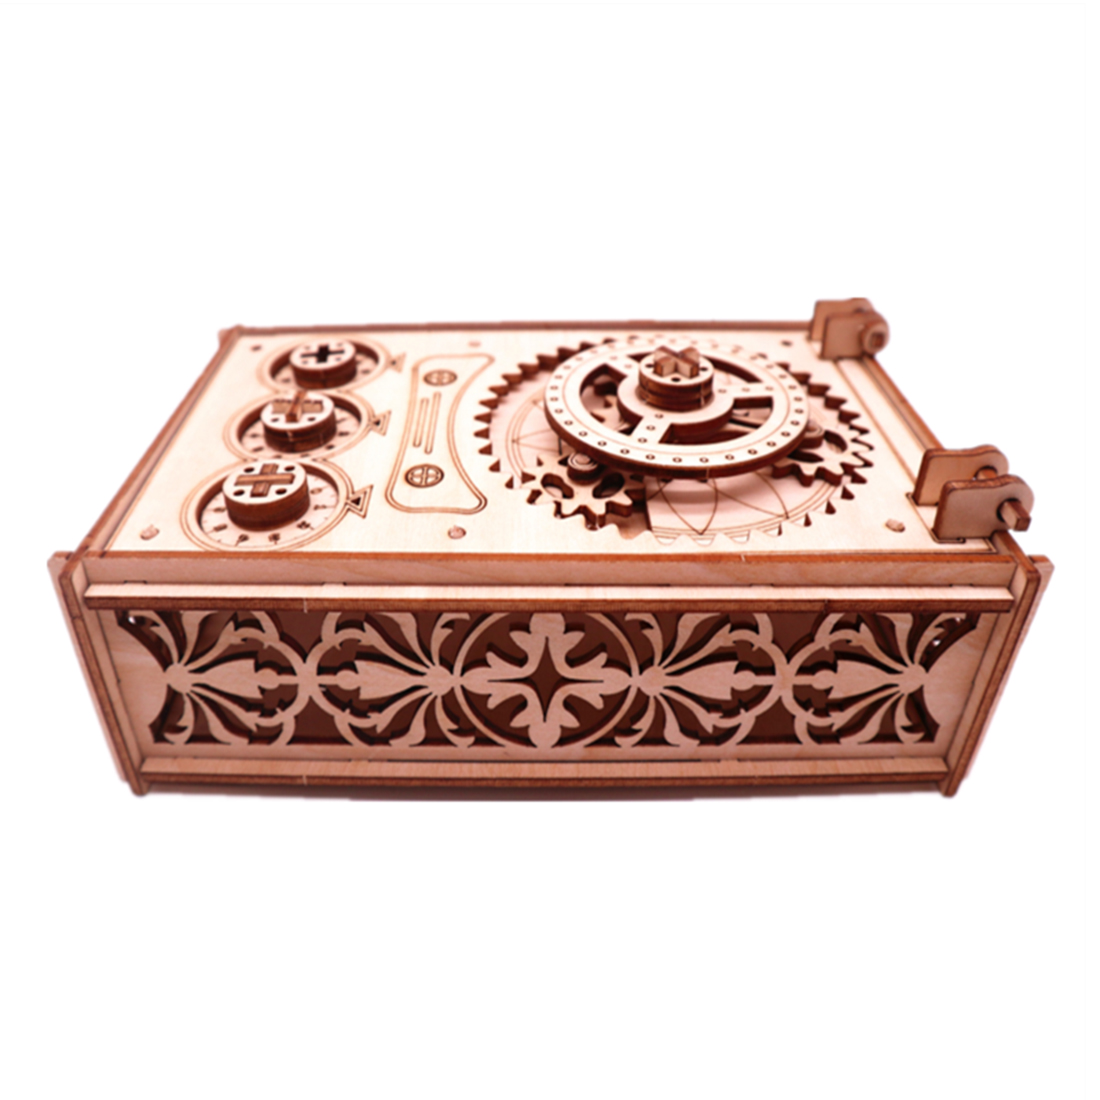 3D Organ Password Treasure Box Wooden Mechanical Puzzles DIY Assembly Model Block Assembly Toys